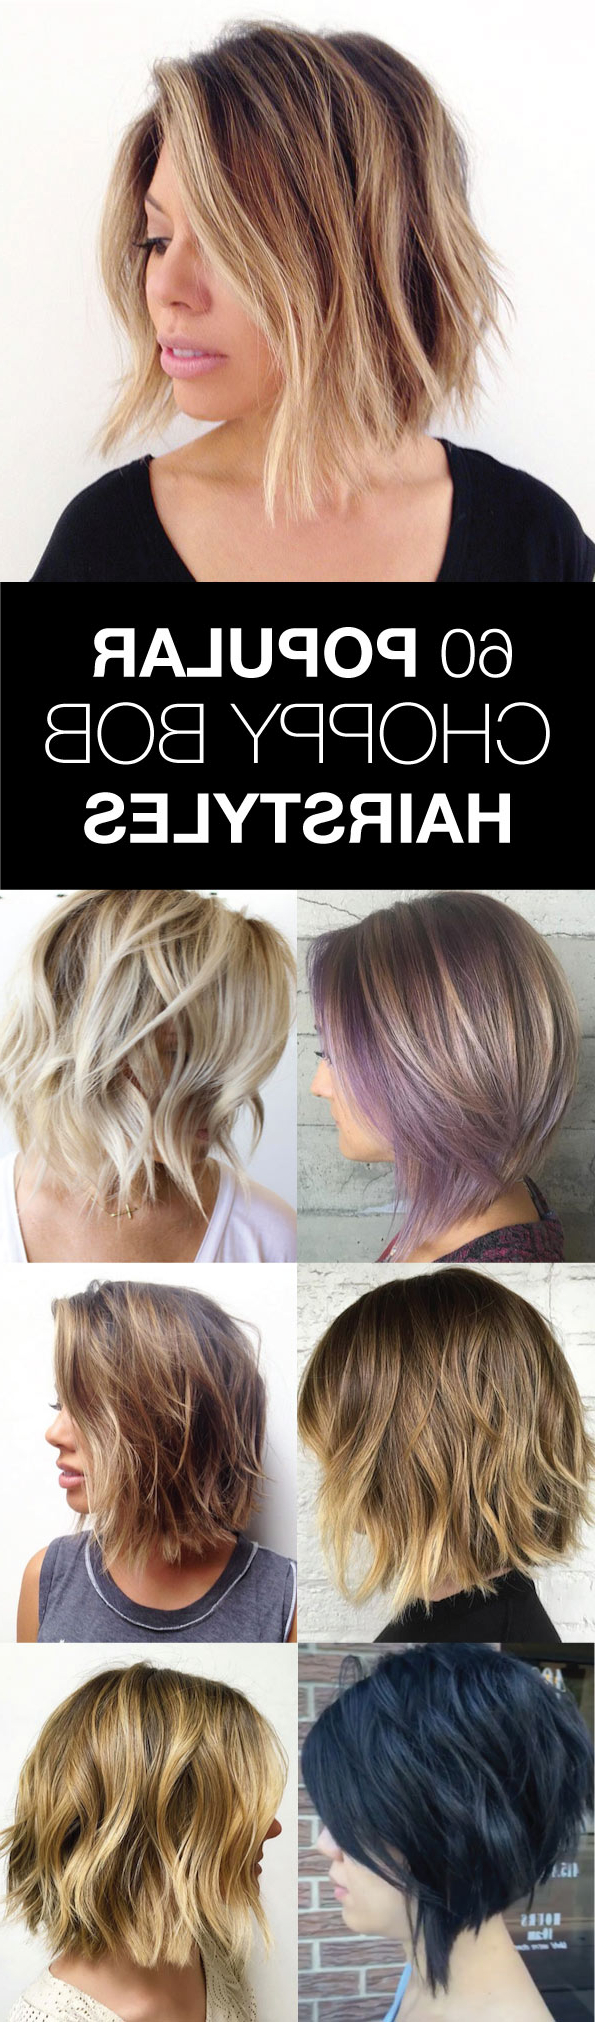 60 Popular Choppy Bob Hairstyles – Style Skinner In Choppy Brown And Lavender Bob Hairstyles (View 14 of 20)